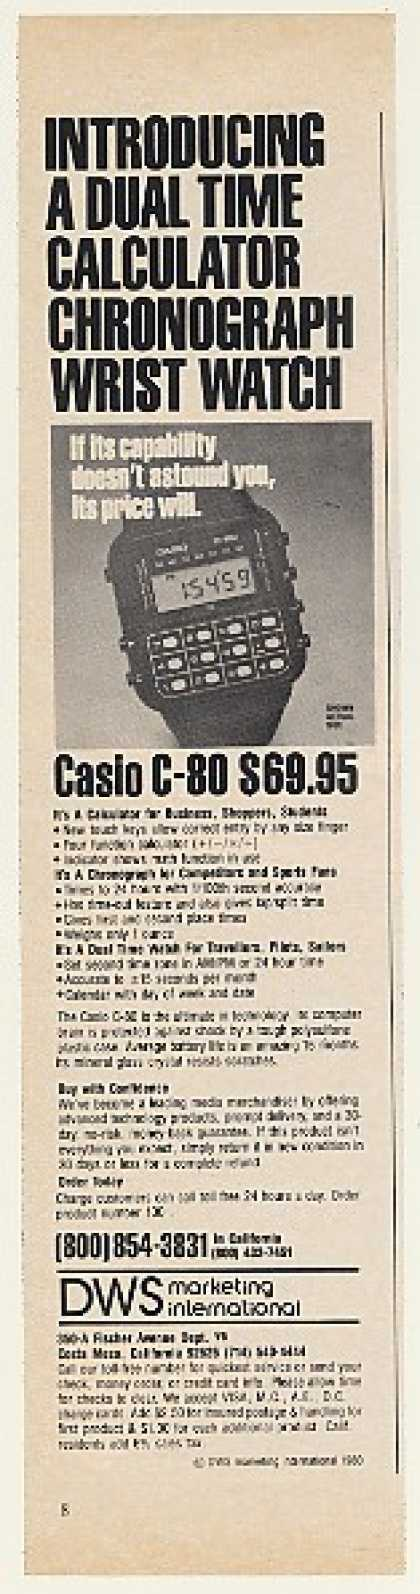 DWS Marketing Casio C-80 Calculator Watch (1980)